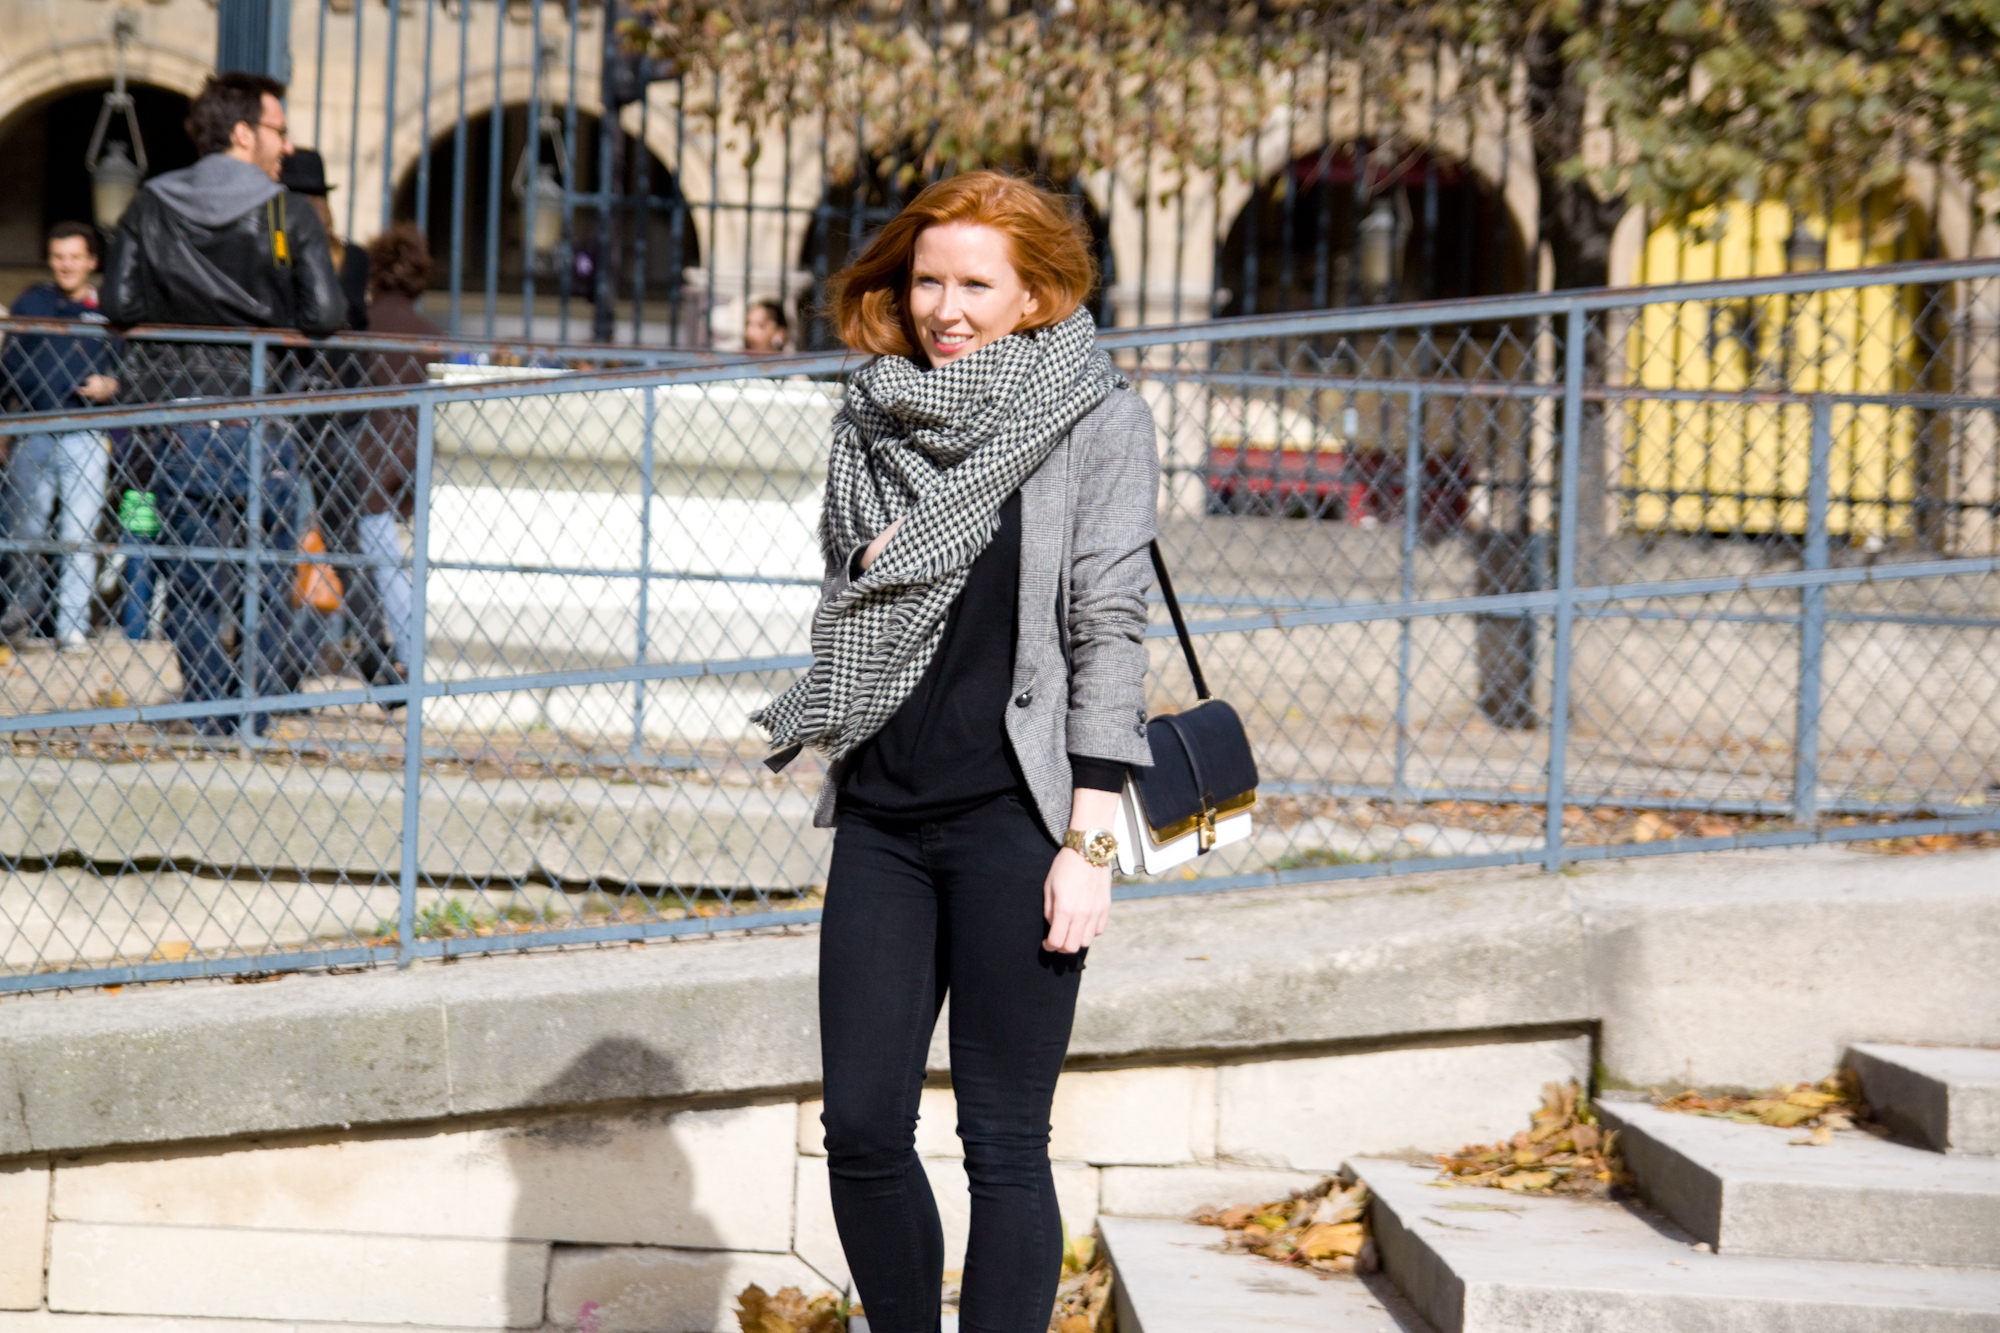 Wearing: Zara jumper, jacket, scarf and bag / Urban Outfitters jeans / Topshop chelsea boots